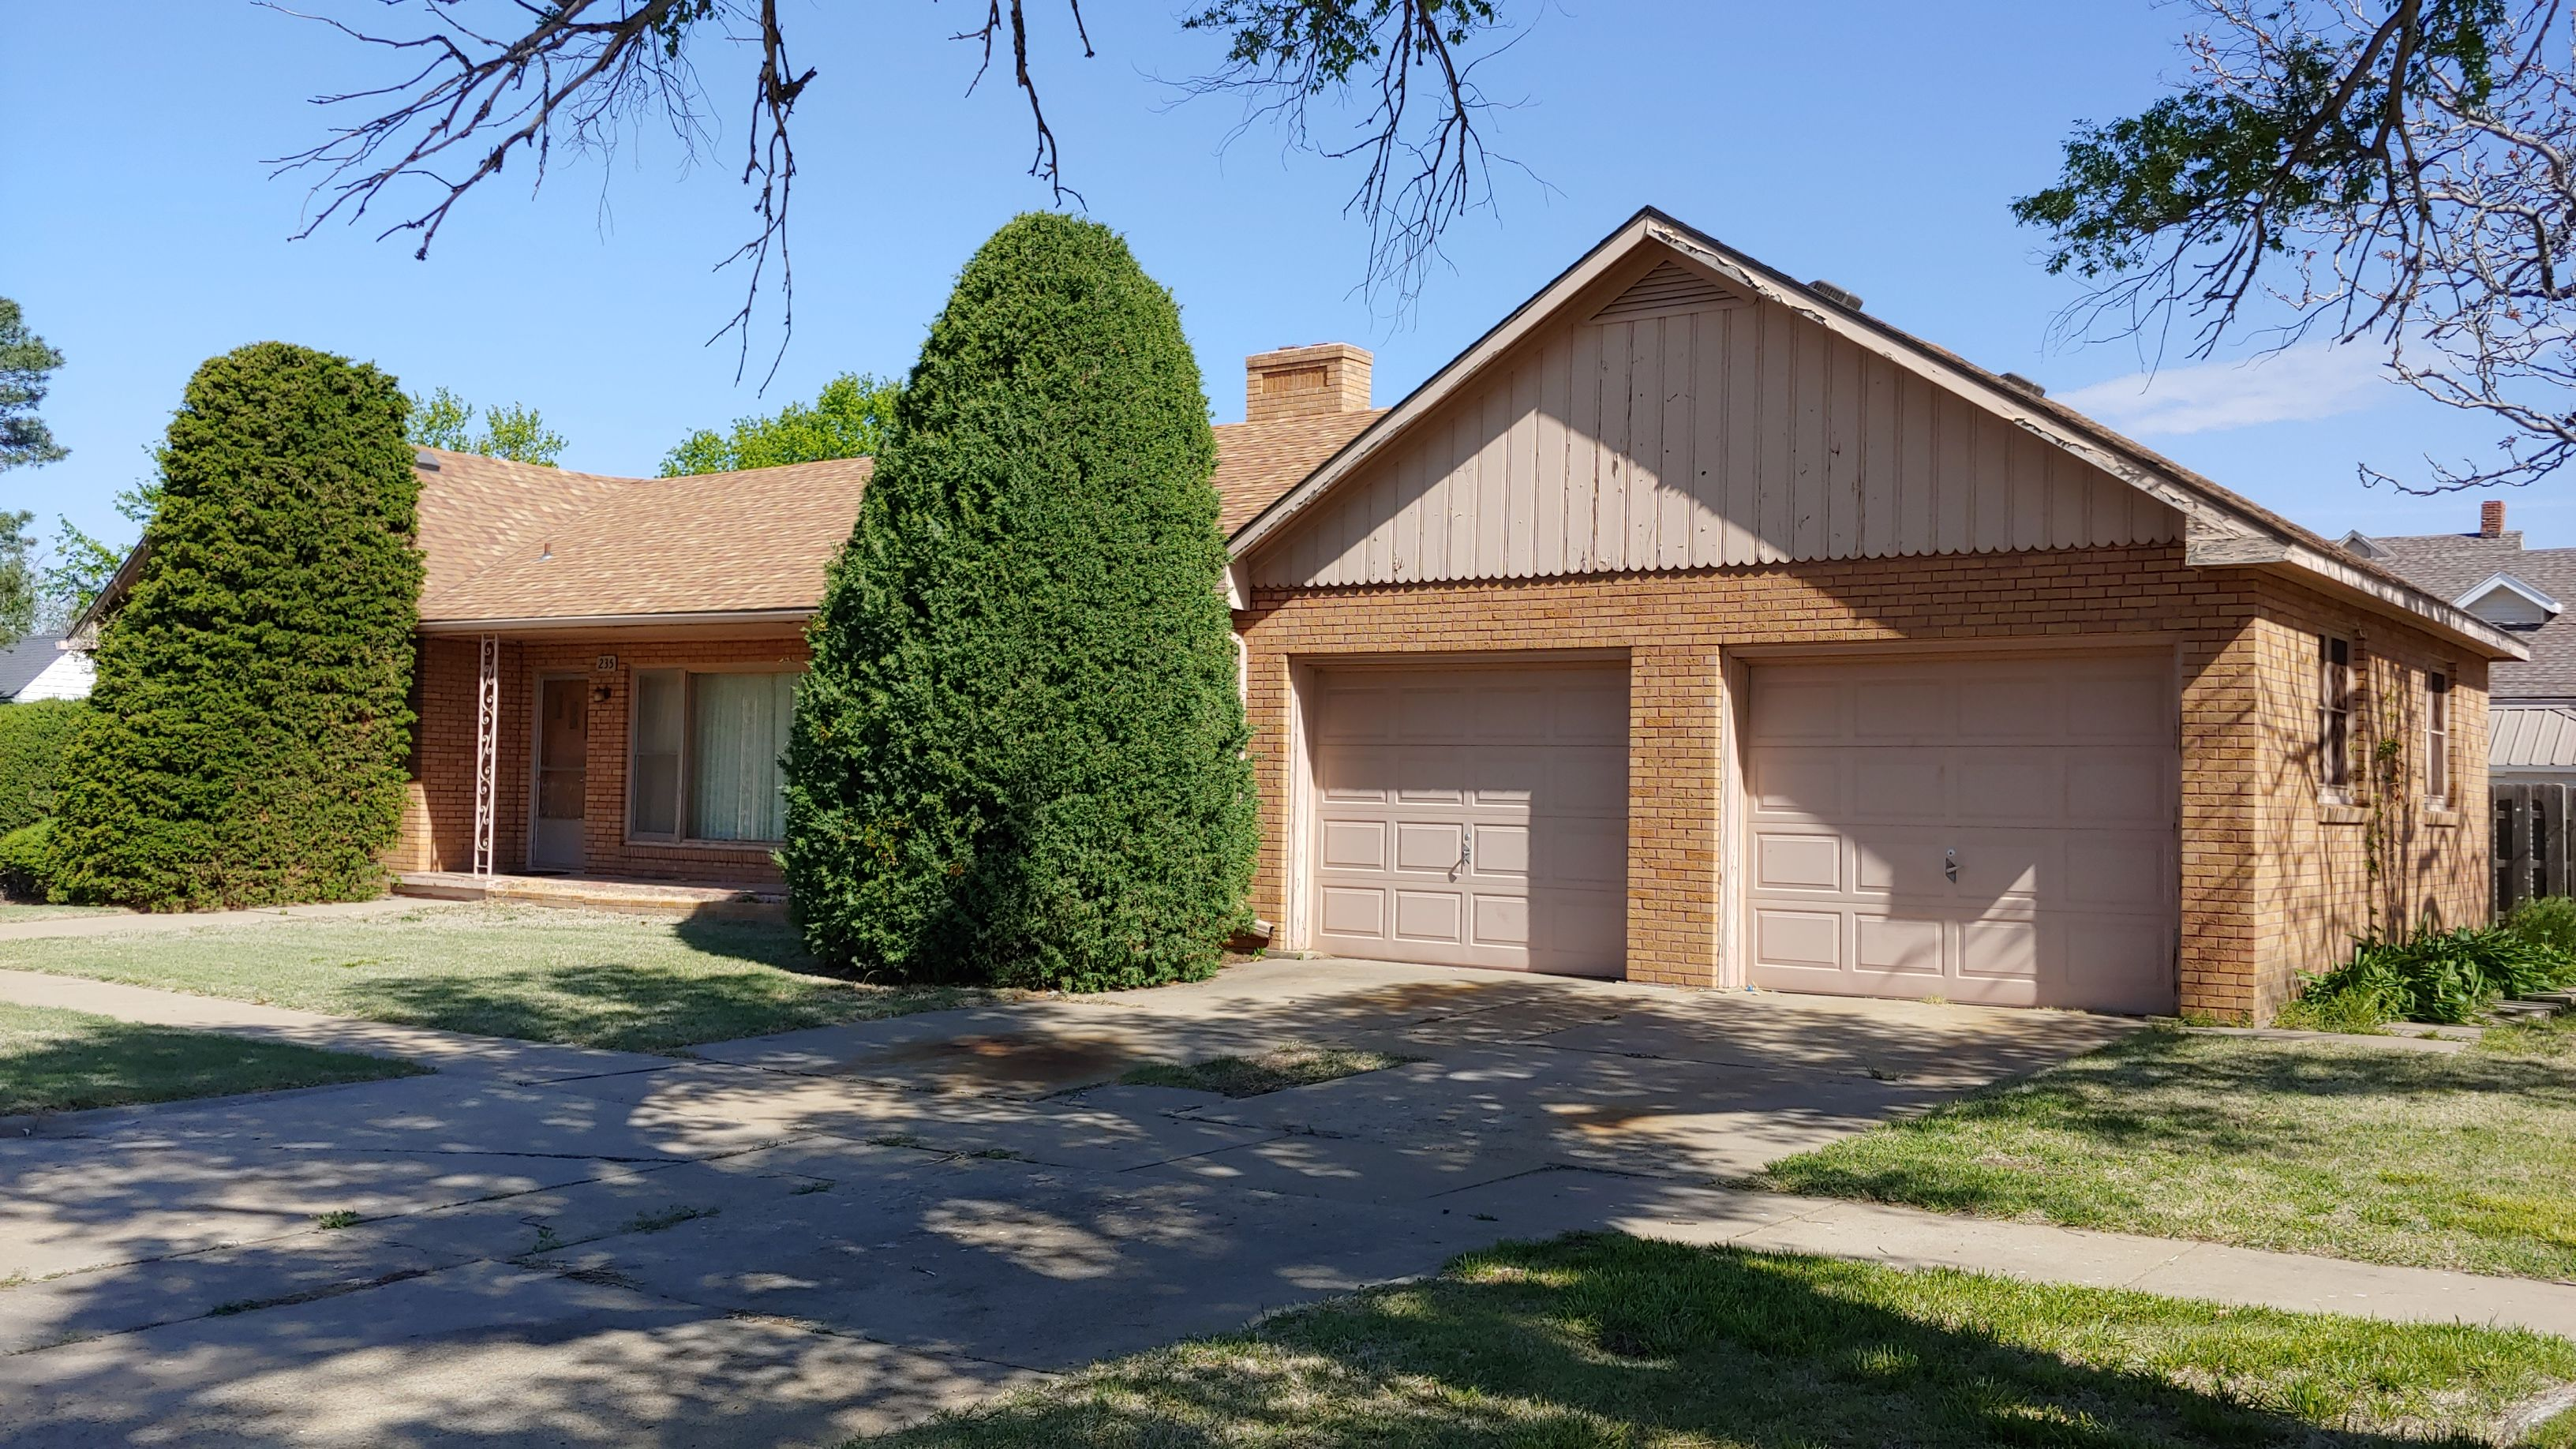 Item 14 in Real Estate and Personal Property Auction gallery